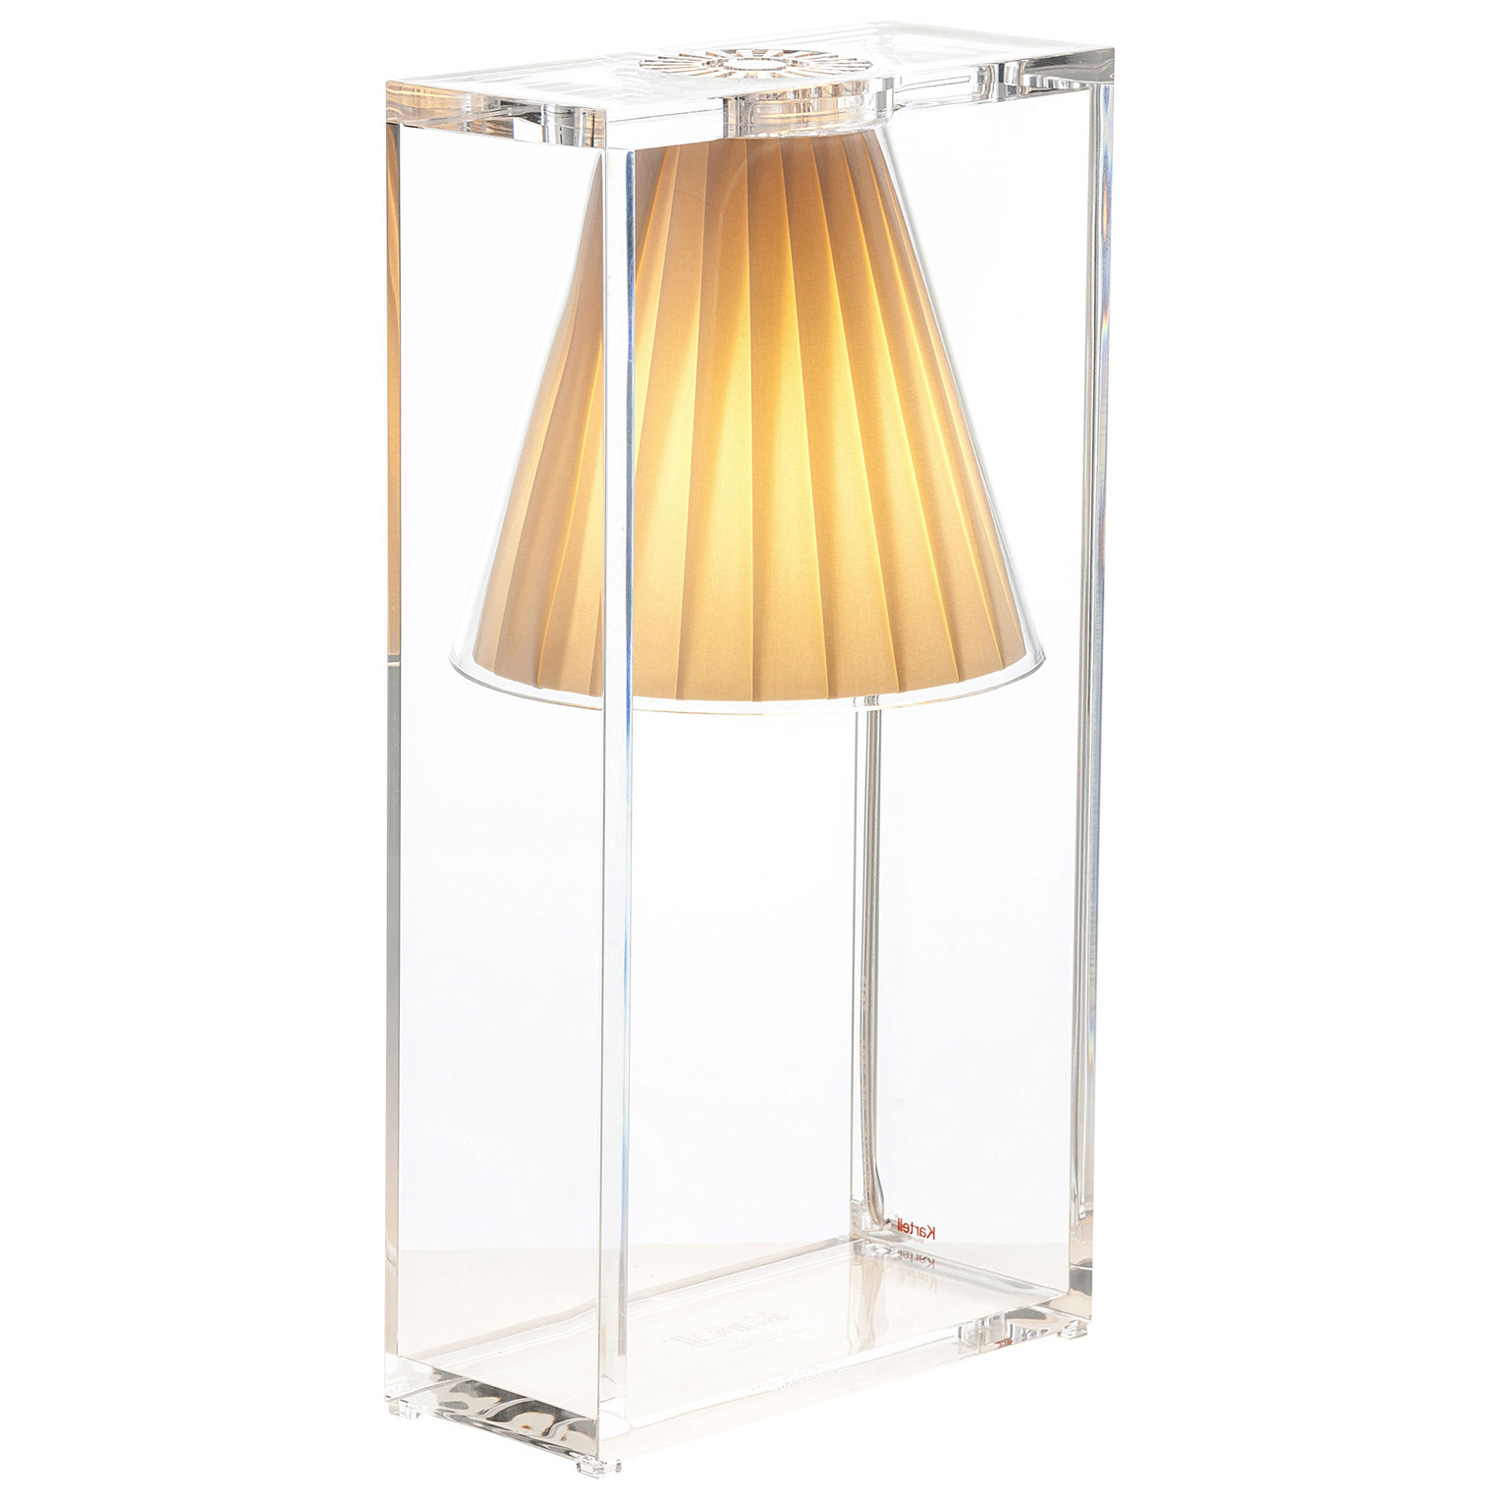 Buy kartell light air table lamp online kartell light air table lamp geotapseo Choice Image